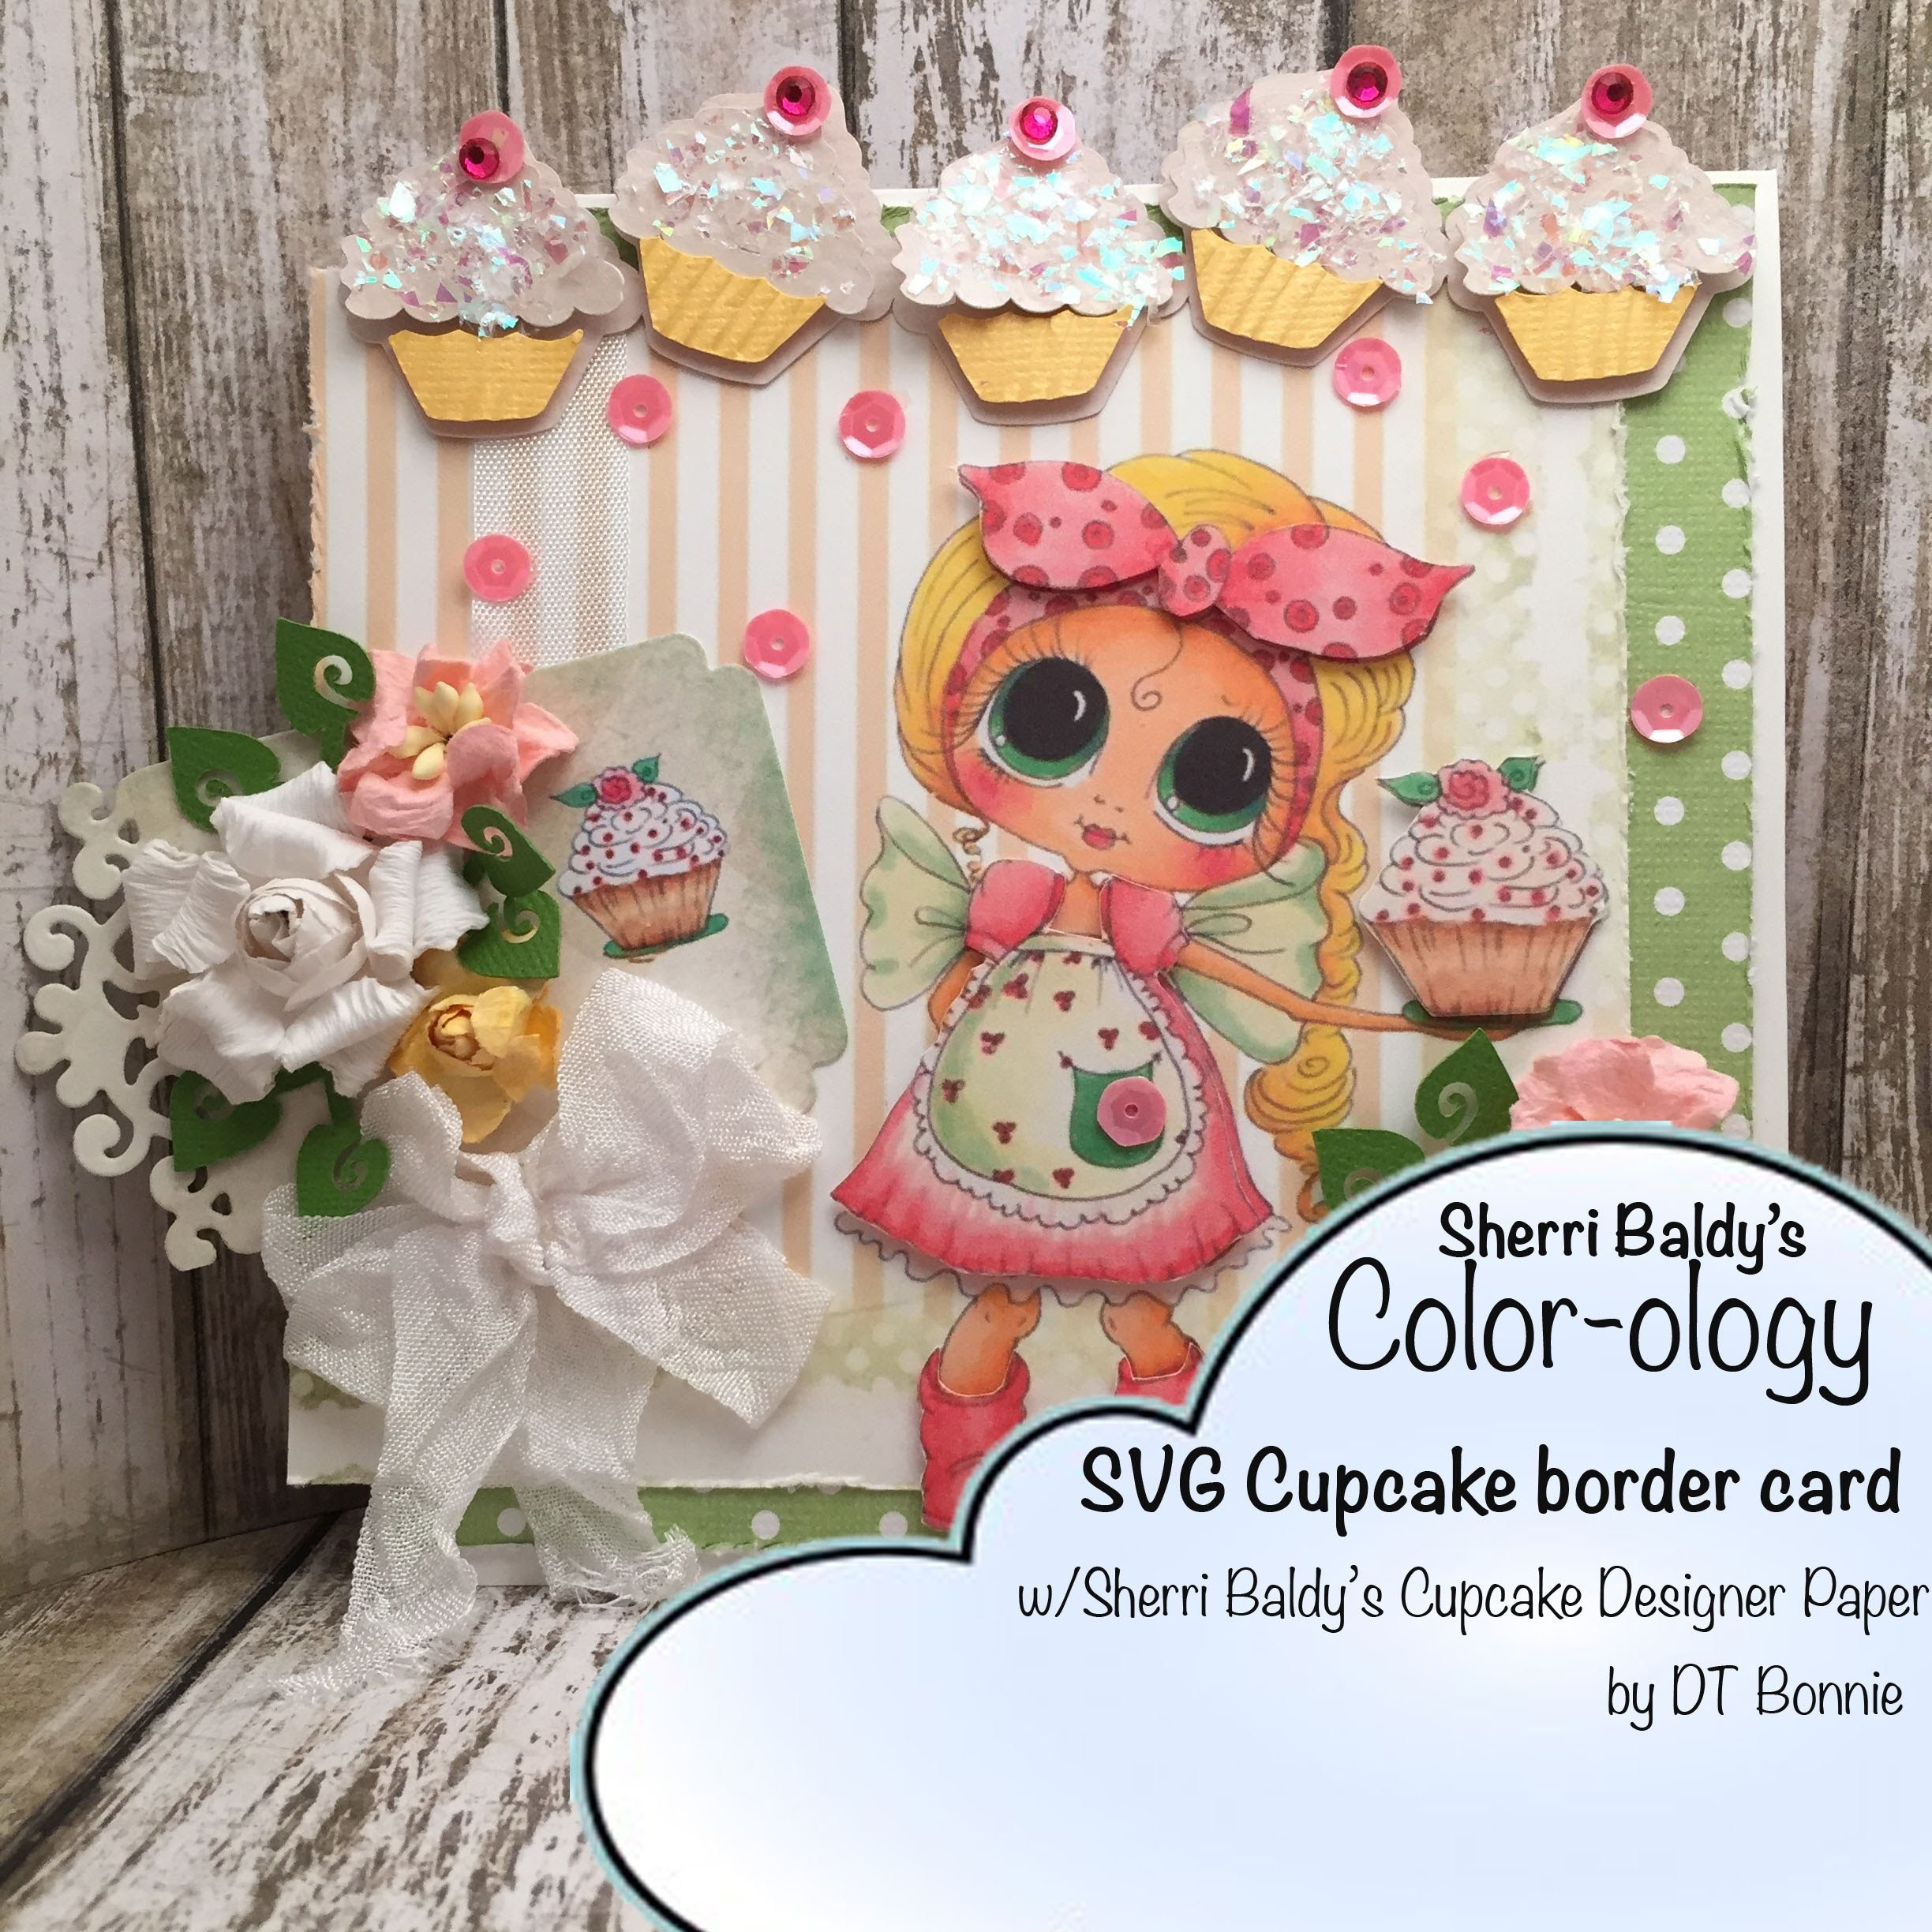 Sherri Baldy's My Besties - New SVG release- Cupcakes Card tutorial